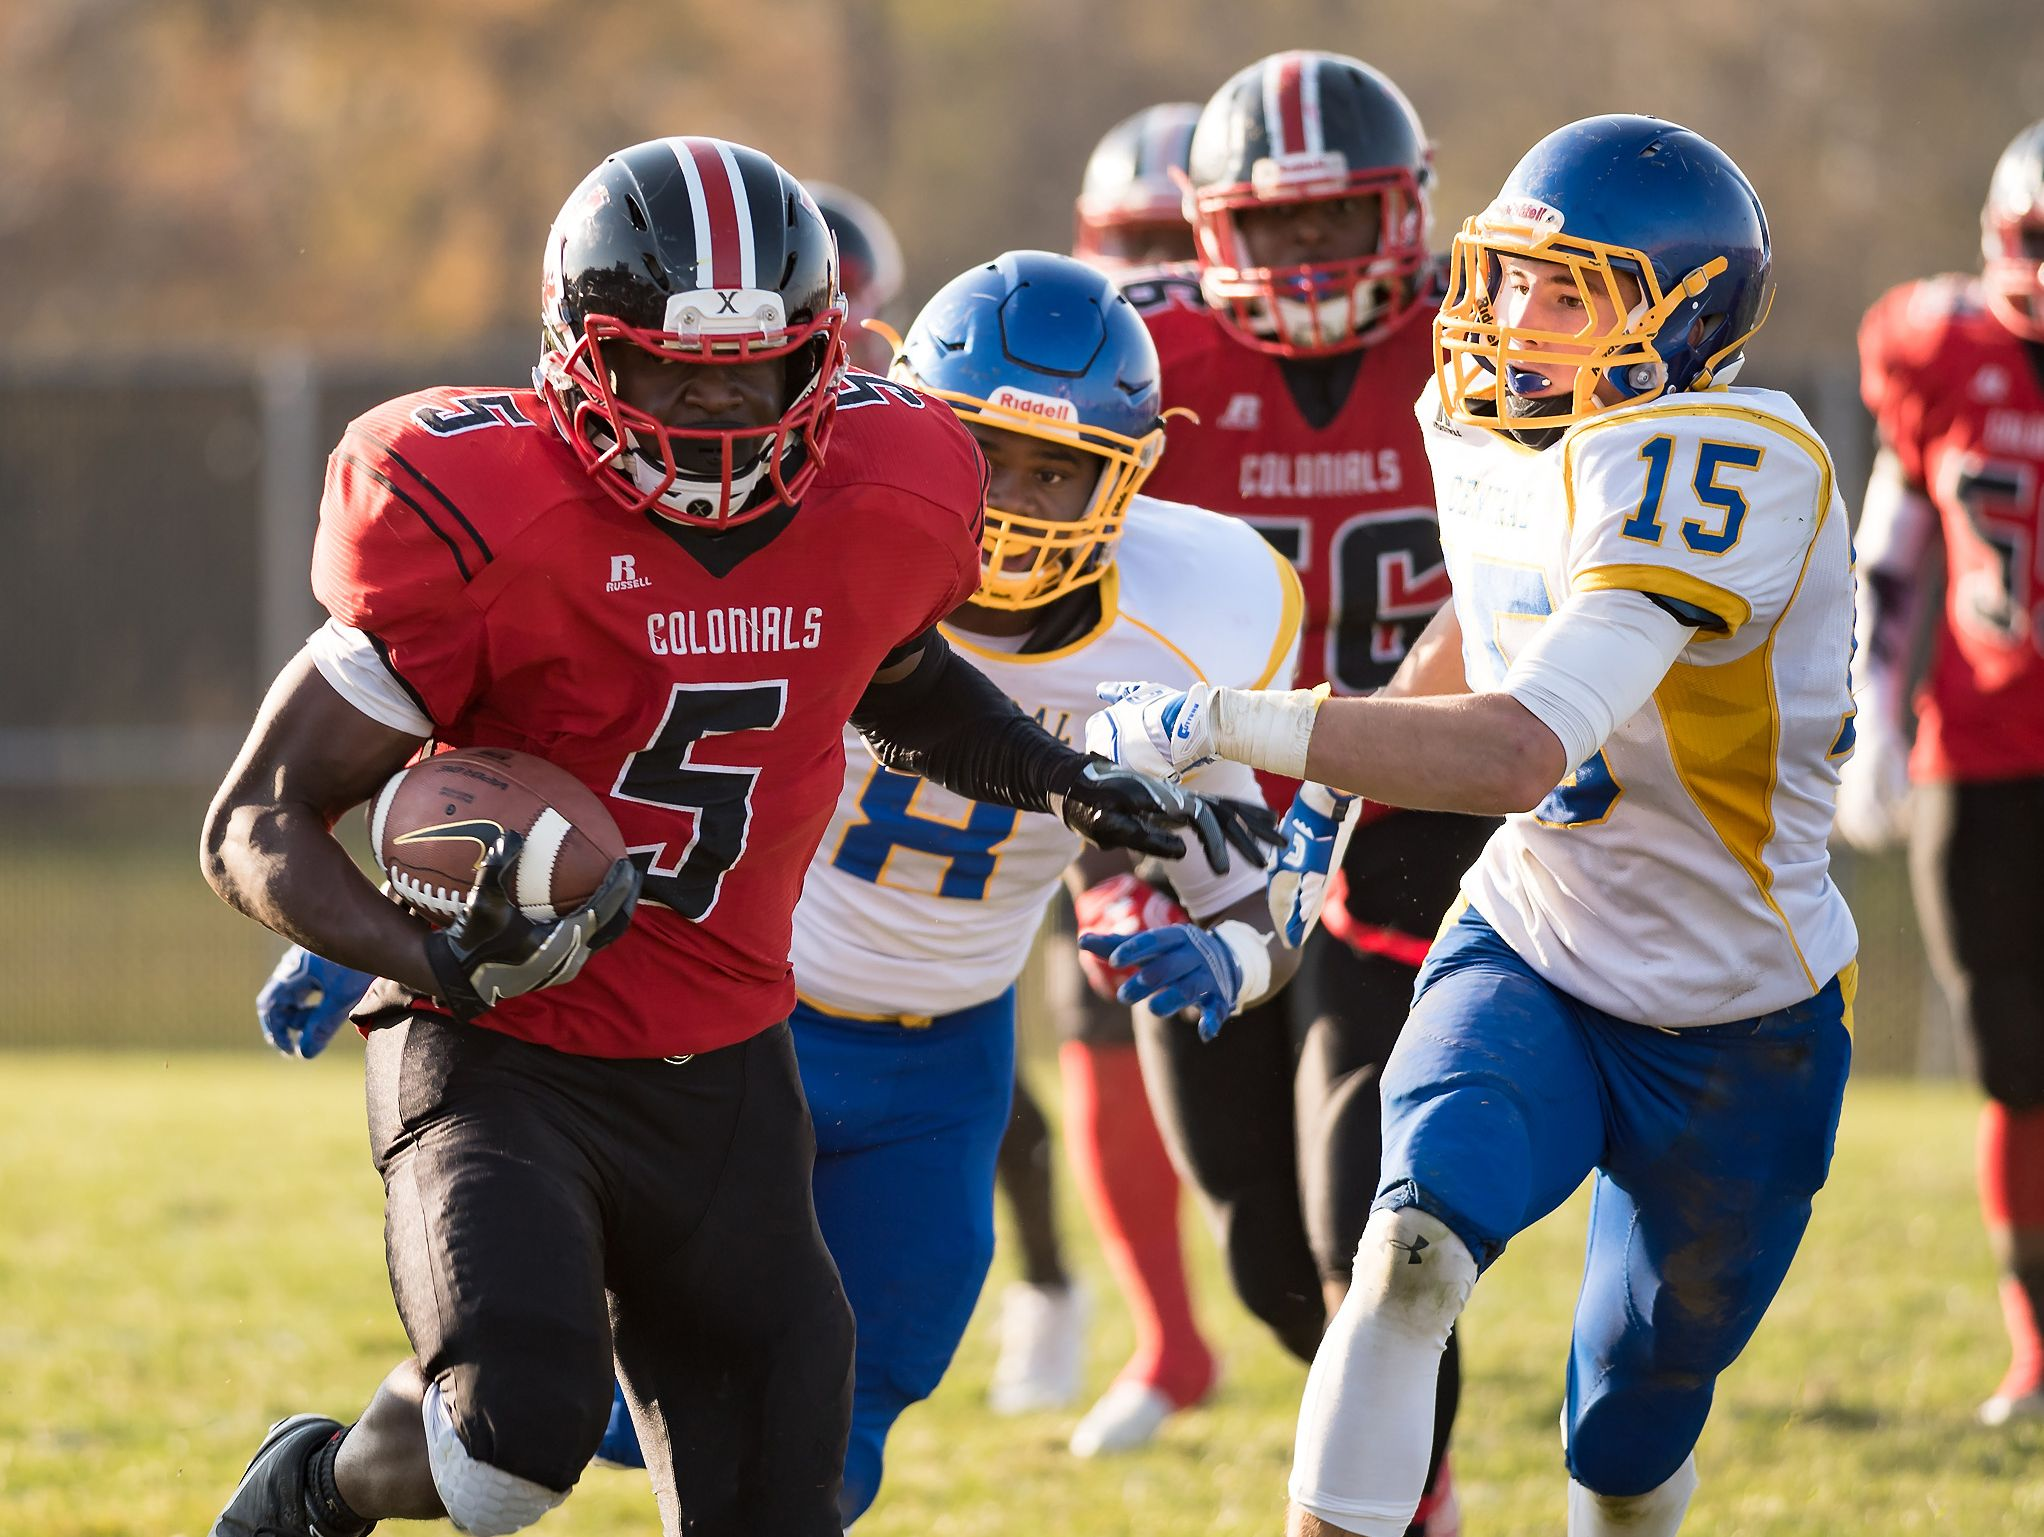 Angelo Ortiz carries the ball for William Penn as Sussex Central plays at William Penn in the opening round of DIAA Division II playoffs.